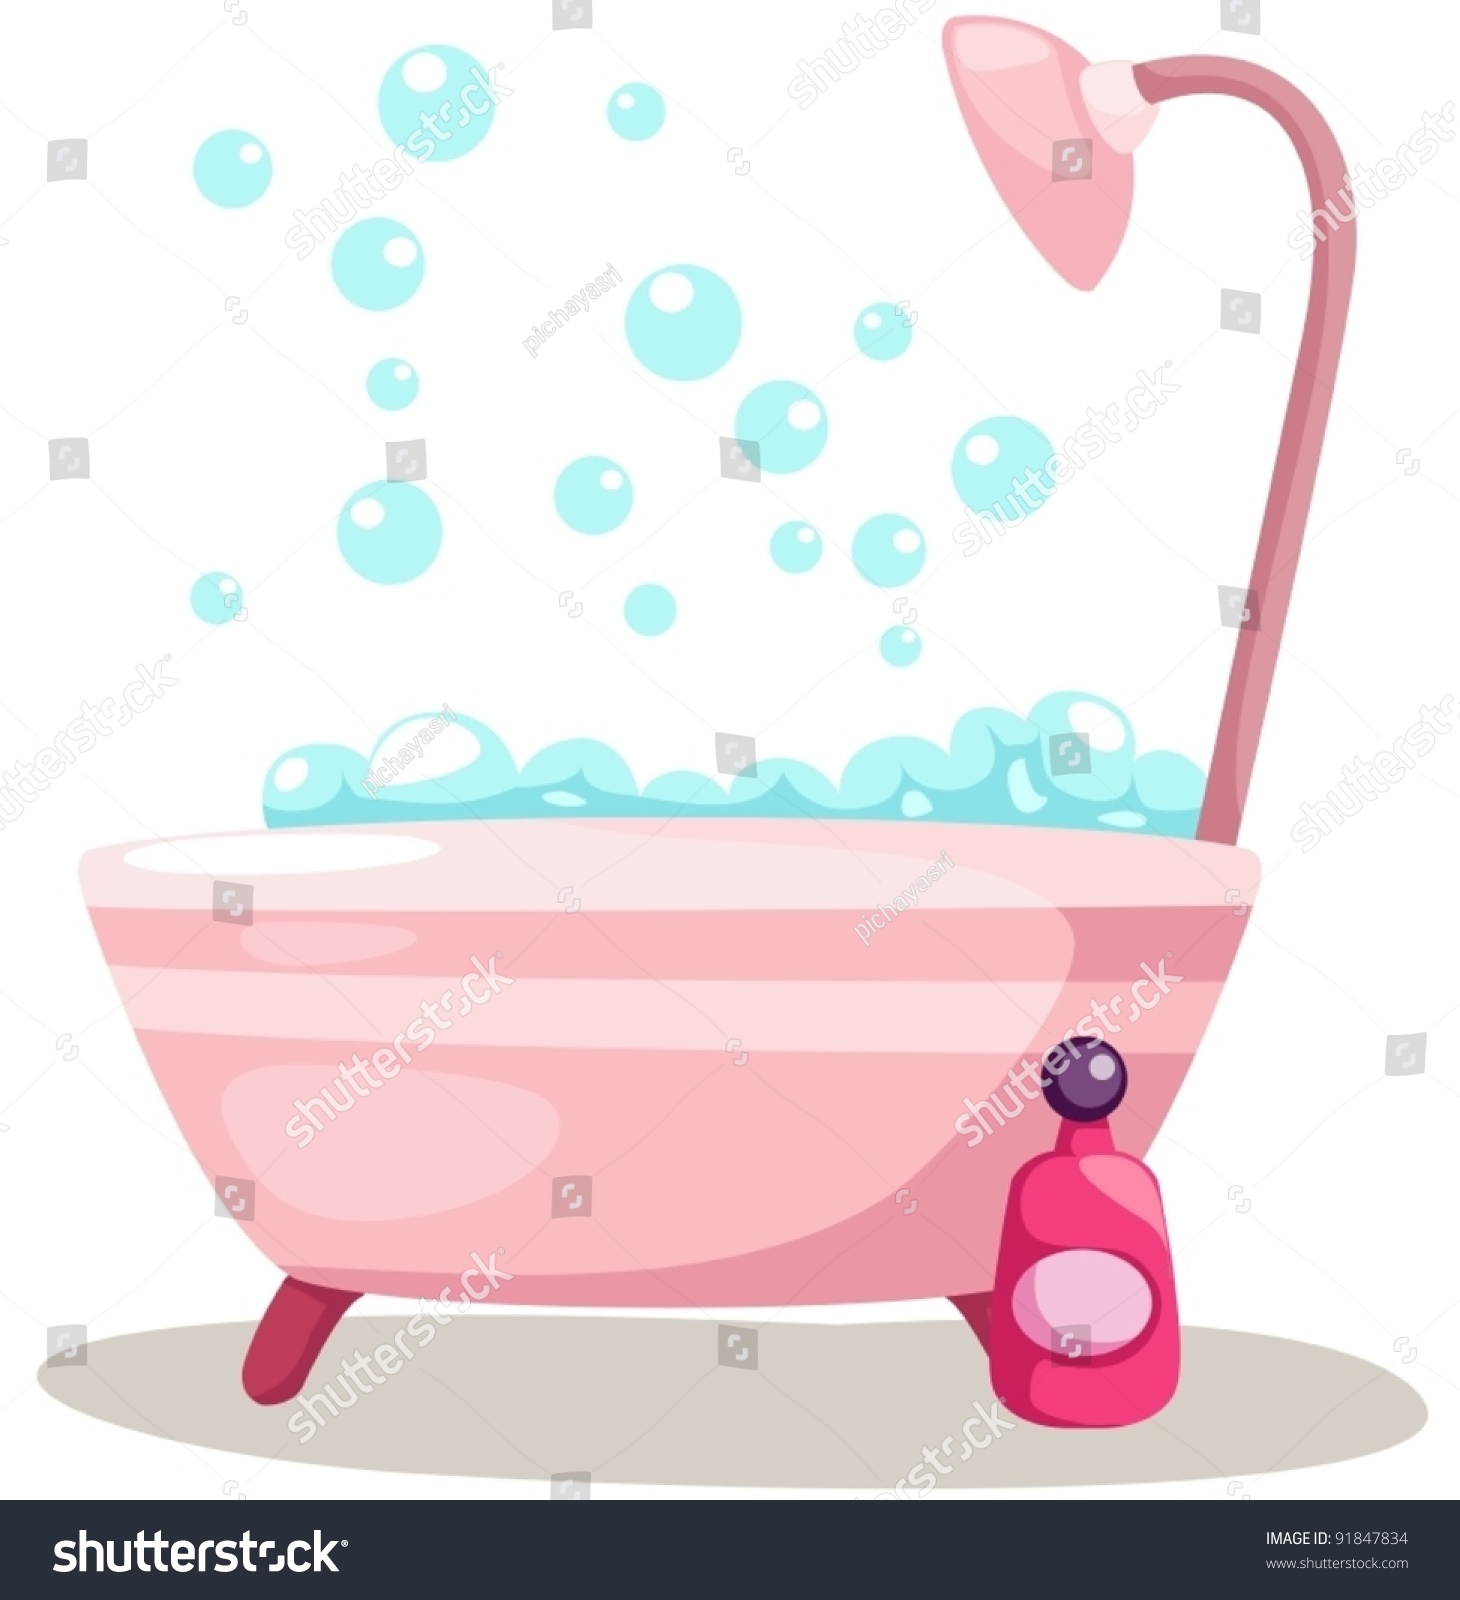 Exellent Bathtub Illustration Isolated A On White Background In Design Decorating